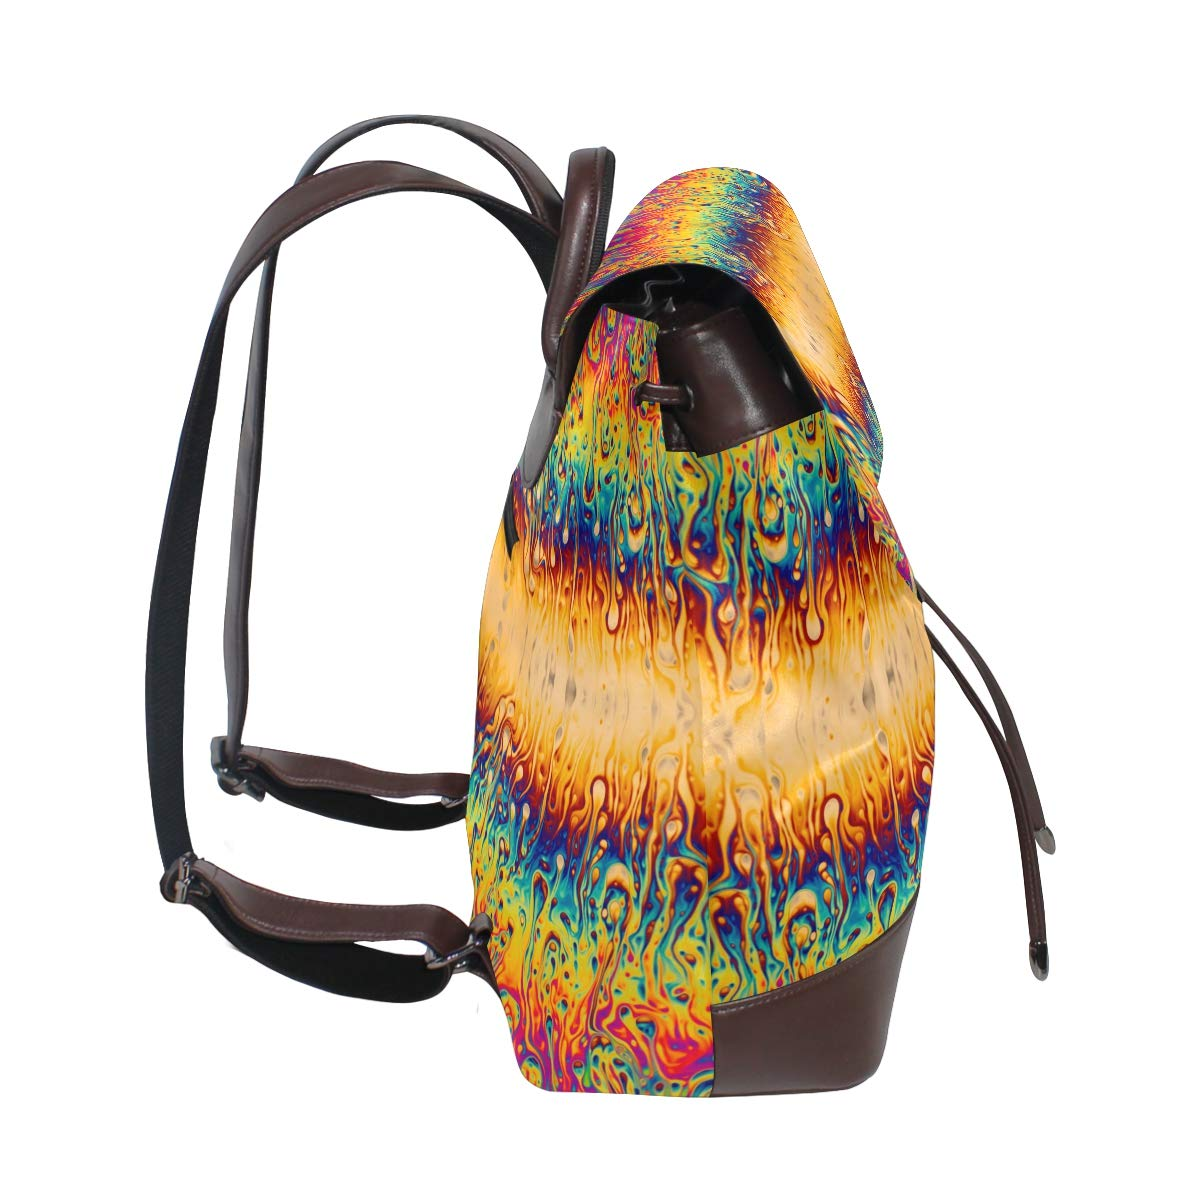 Unisex PU Leather Backpack Psychedelic Trippy Optical Illusion Print Womens Casual Daypack Mens Travel Sports Bag Boys College Bookbag